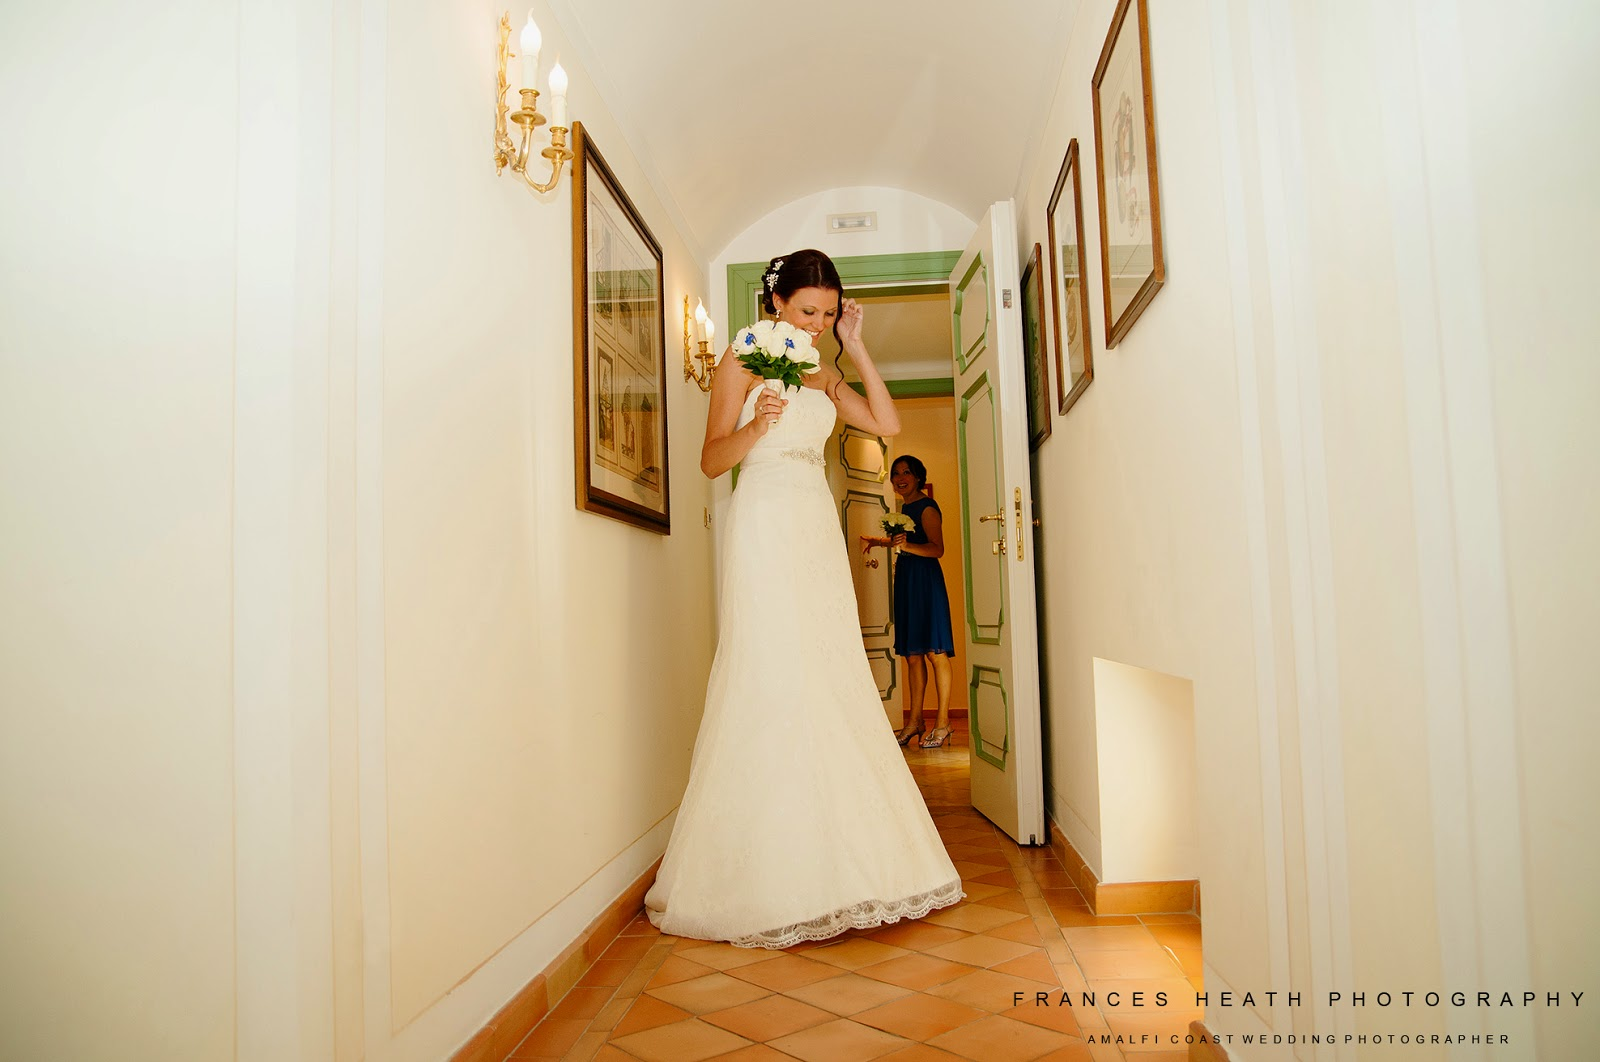 Bride at Hotel Caruso in Ravello